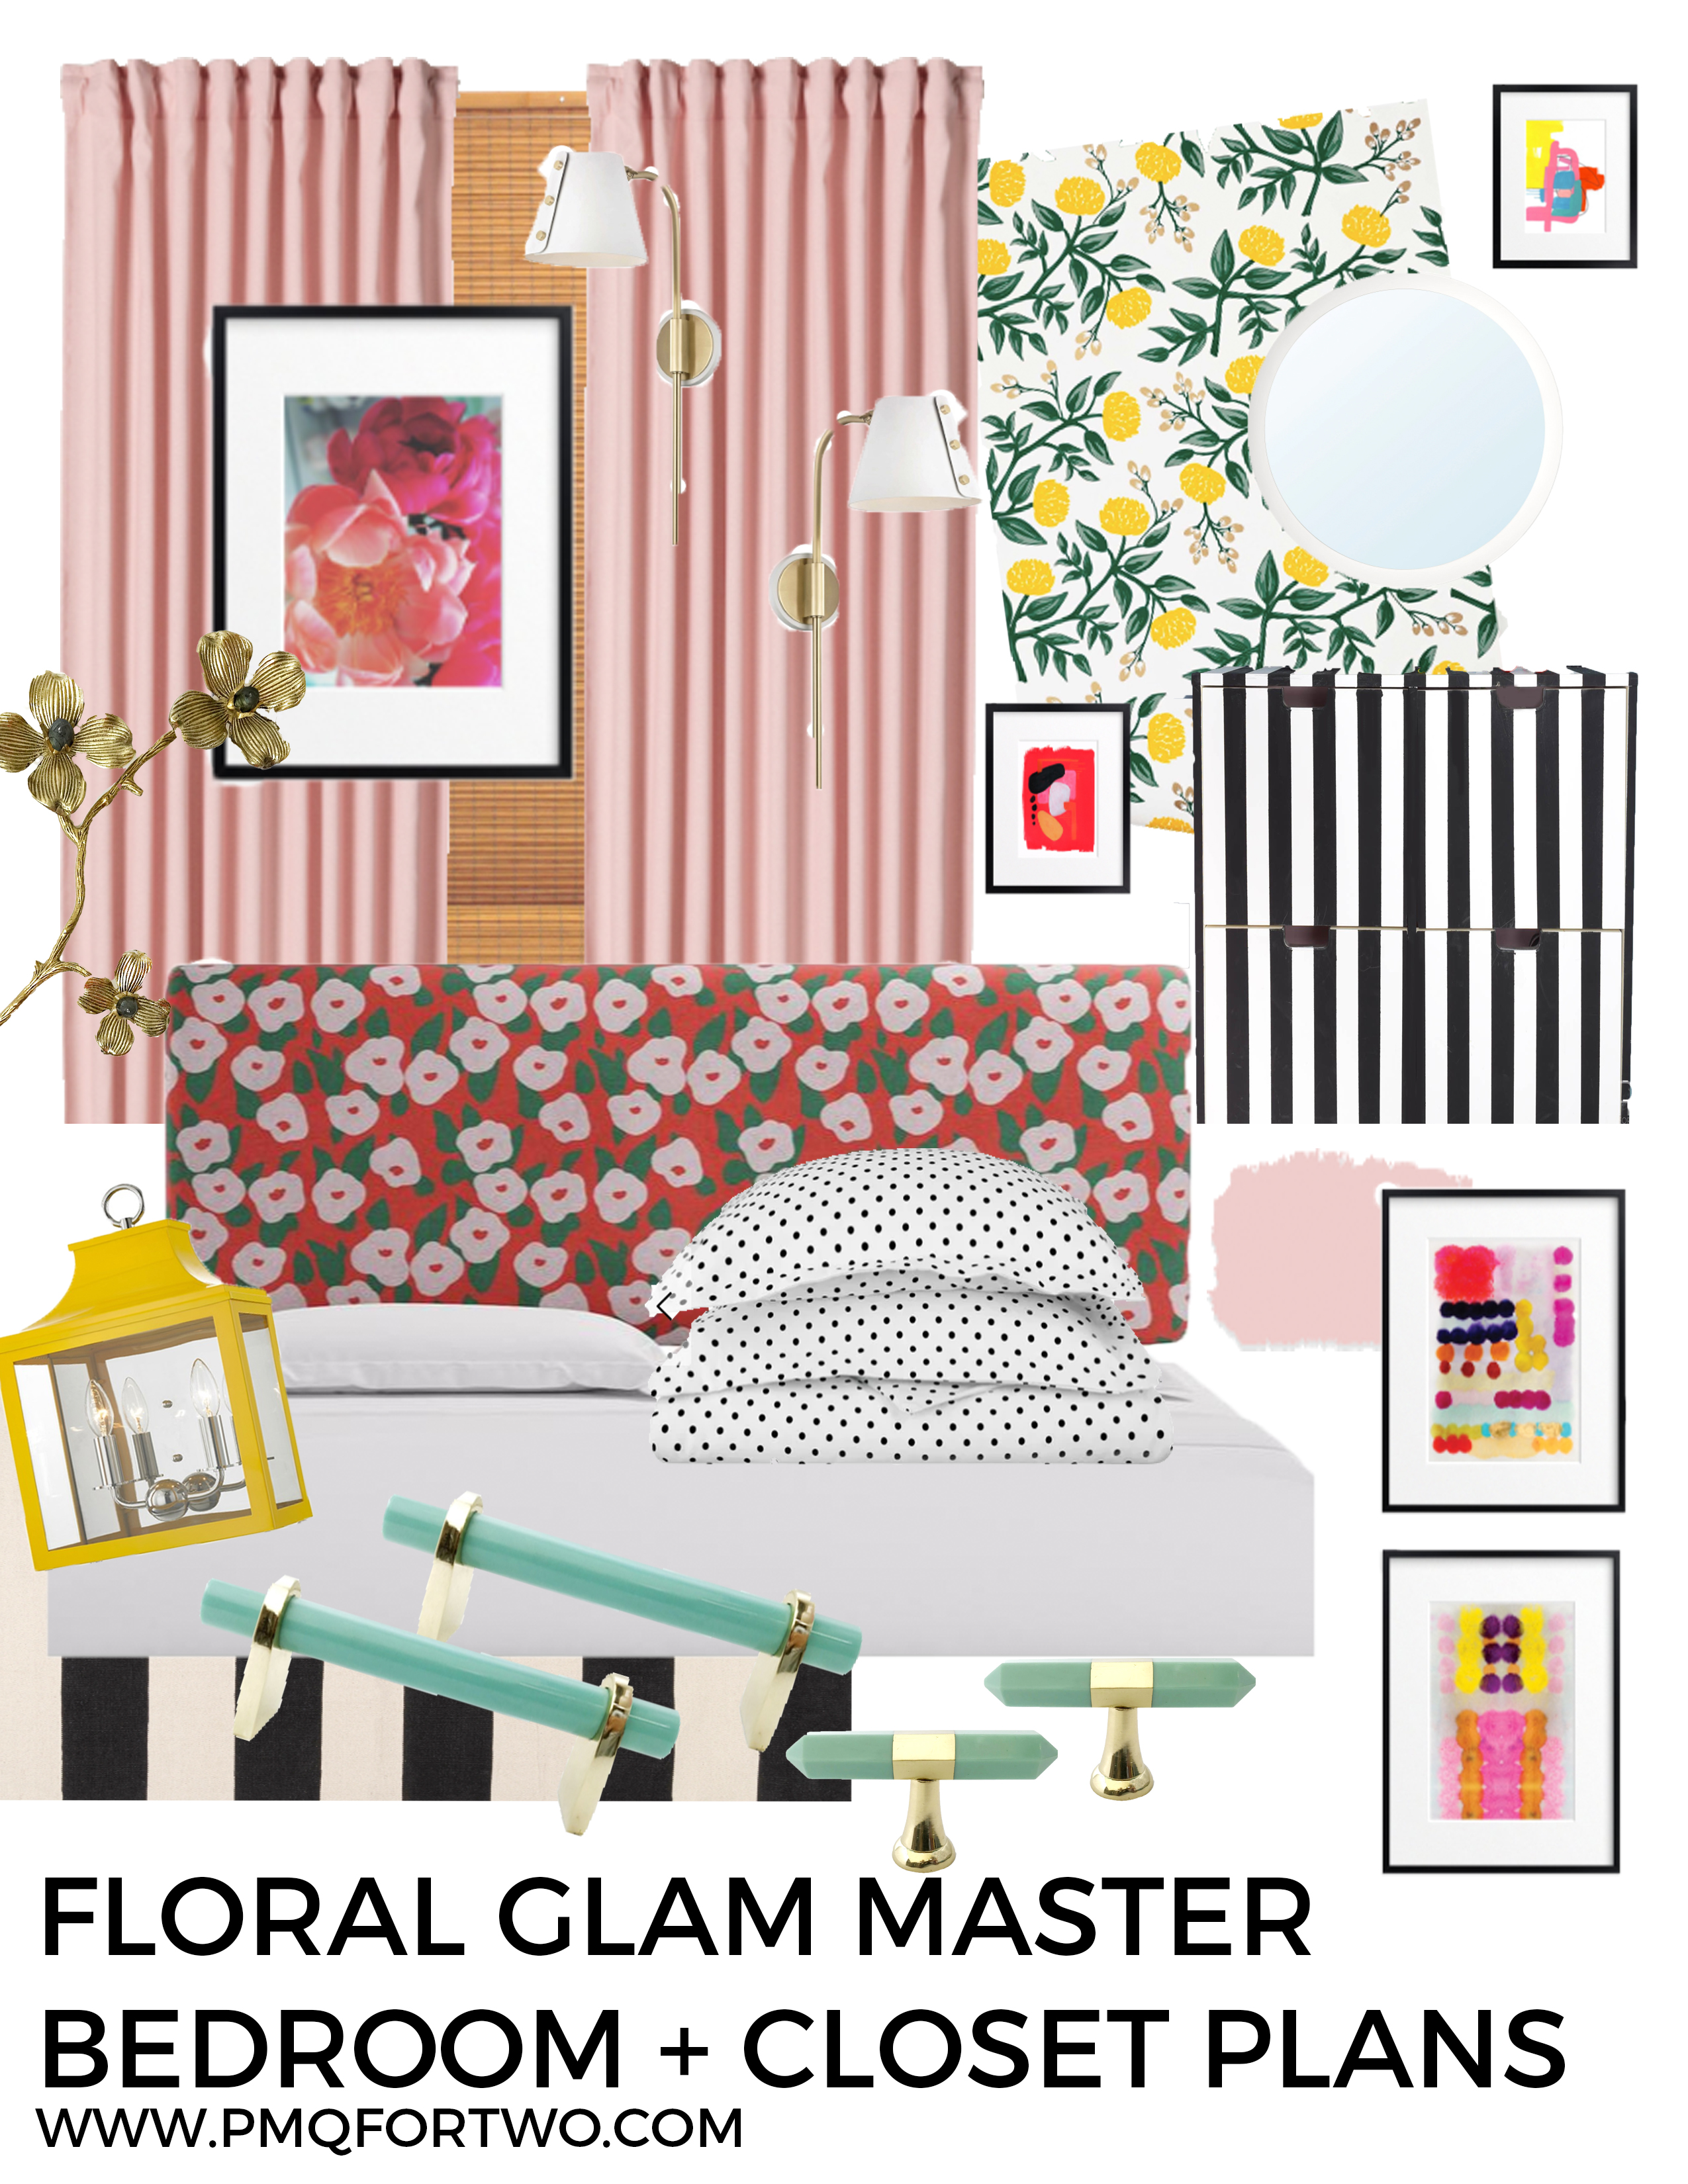 The time is now! I'm unveiling our Floral Glam Master Bedroom + Closet Plans, and how we're going to turn our beige box into something amazing. We're pulling out all the stops; from paint, to wallpaper, lighting, art, hardware and more!